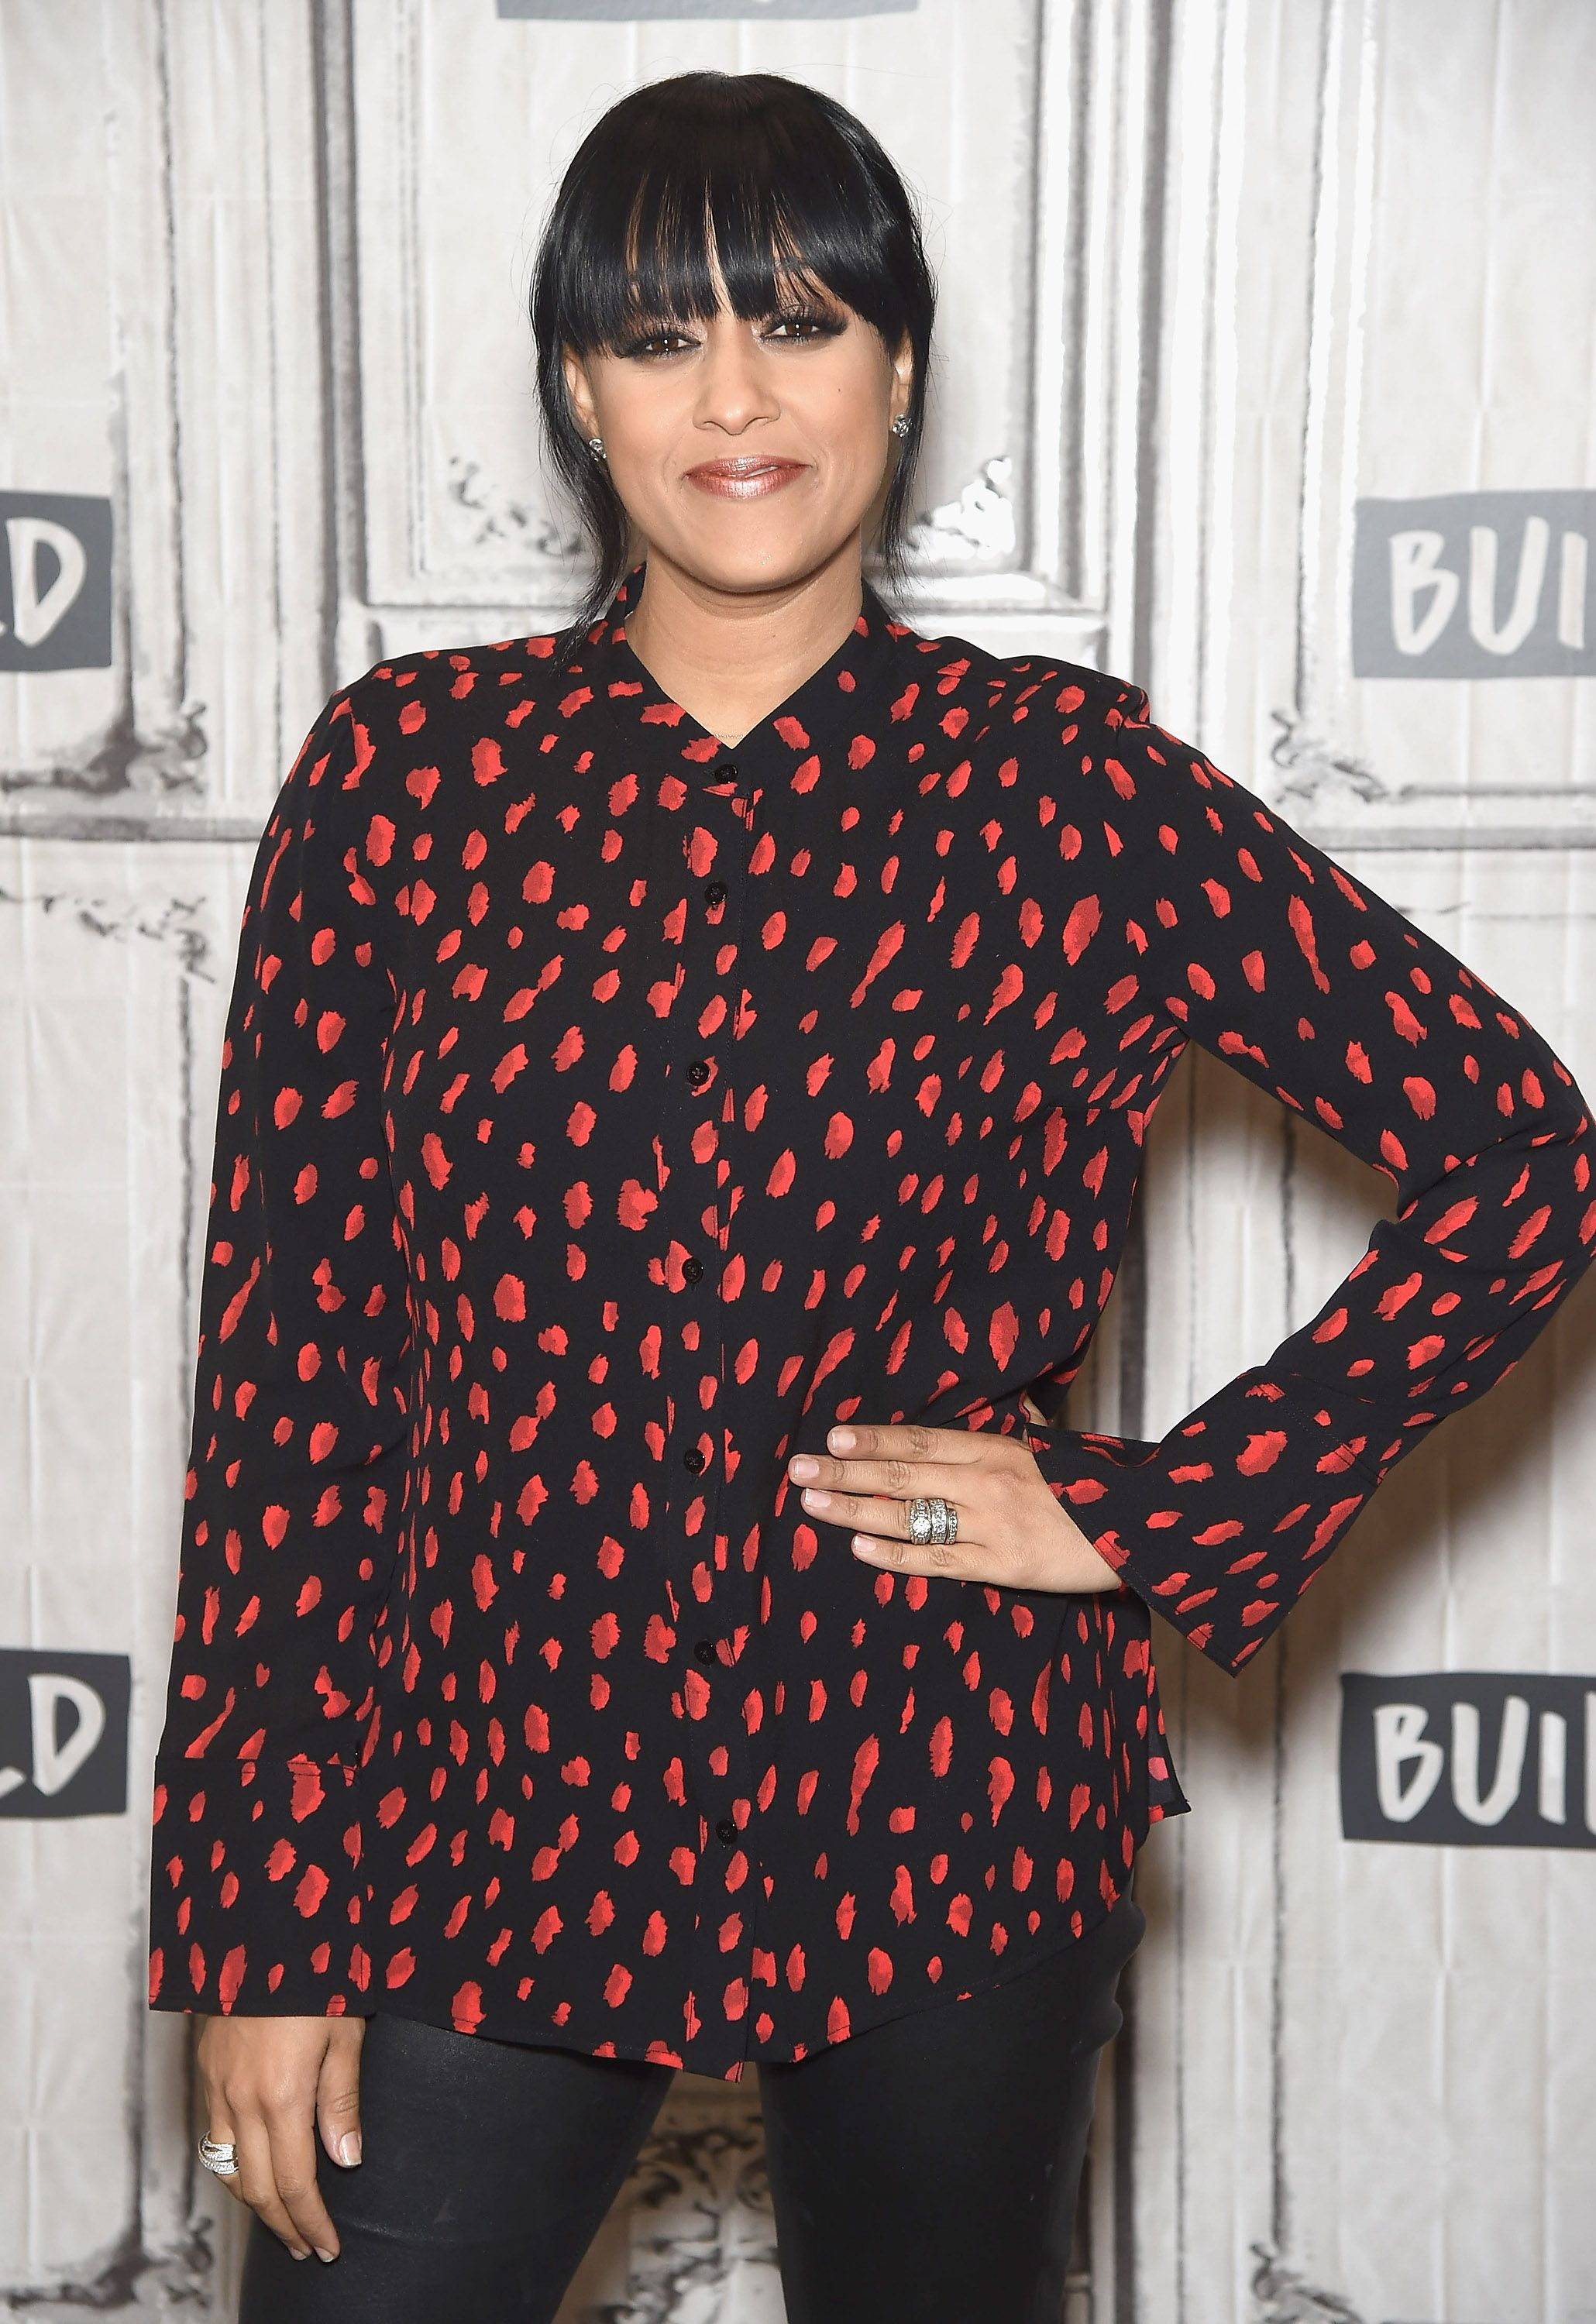 """Tia Mowry at Build Series to discuss her new book """"Whole New You"""" on March 16, 2017 in New York City 